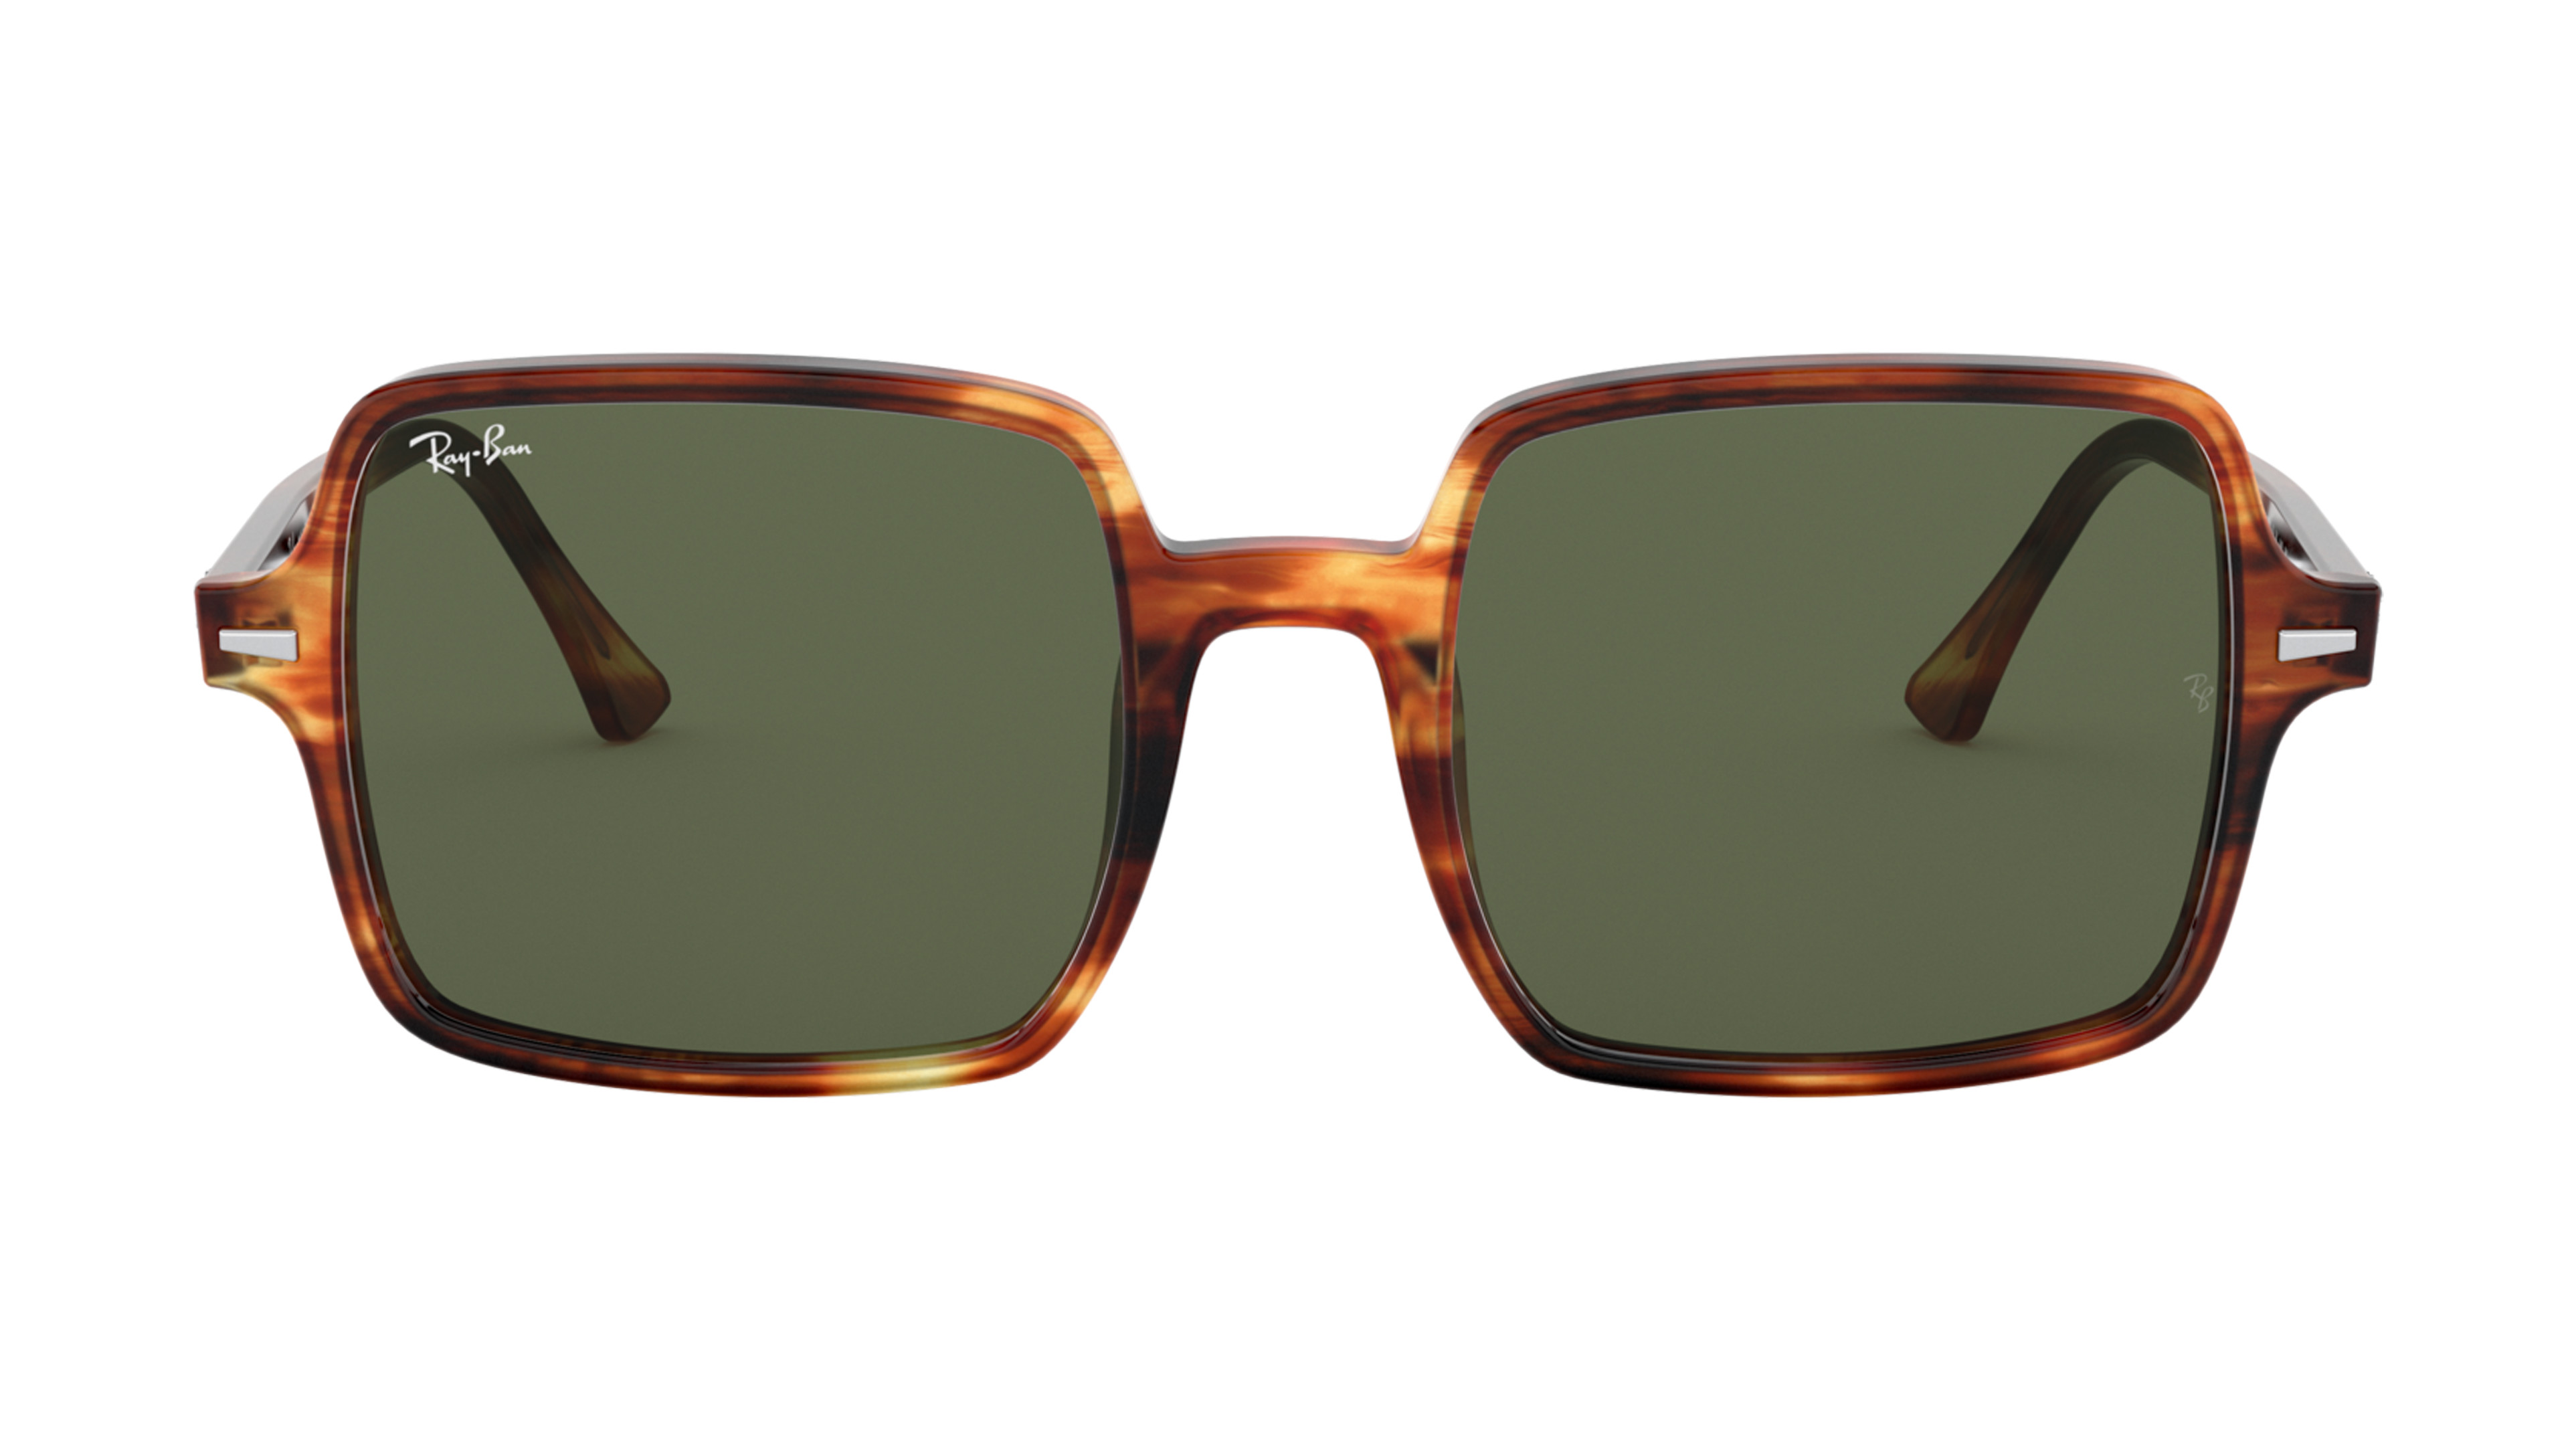 8056597121880-front-ray-ban-square-2-0RB1973-954-31